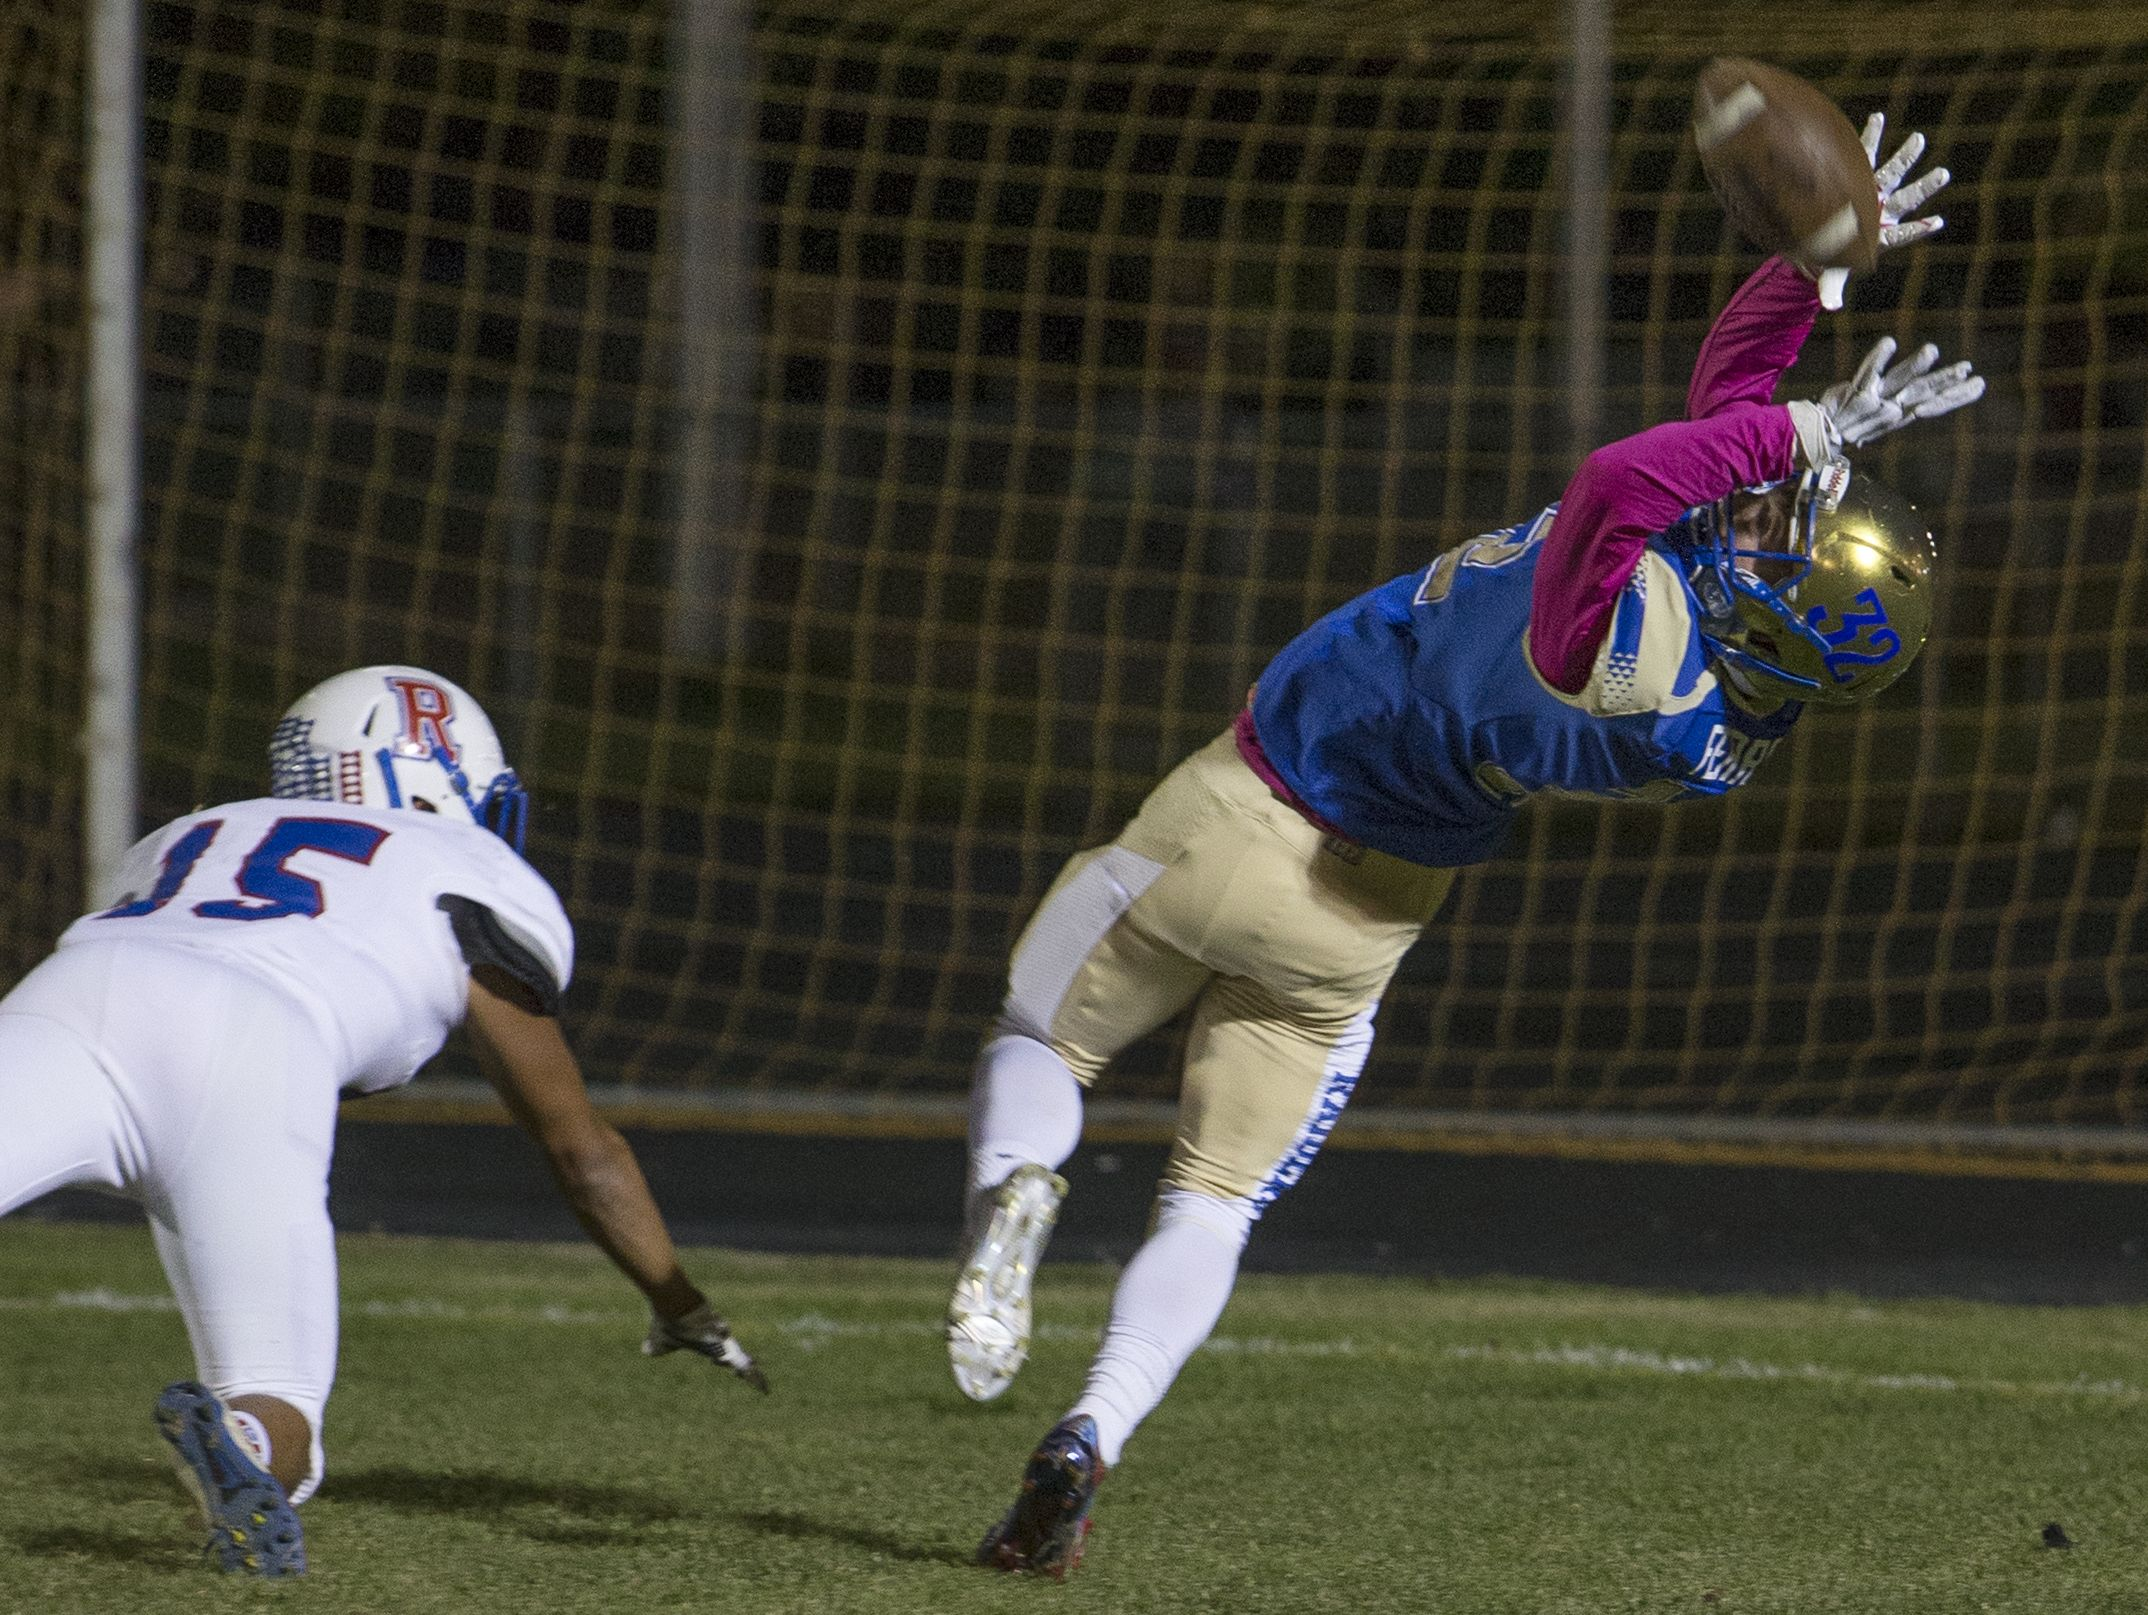 Reed's Robert Ferrel can't make the catch in the end zone against Reno, but pass interference was called on the play, during the football game played on Friday night, October 7, 2016 at Reed High School in Sparks, Nevada.